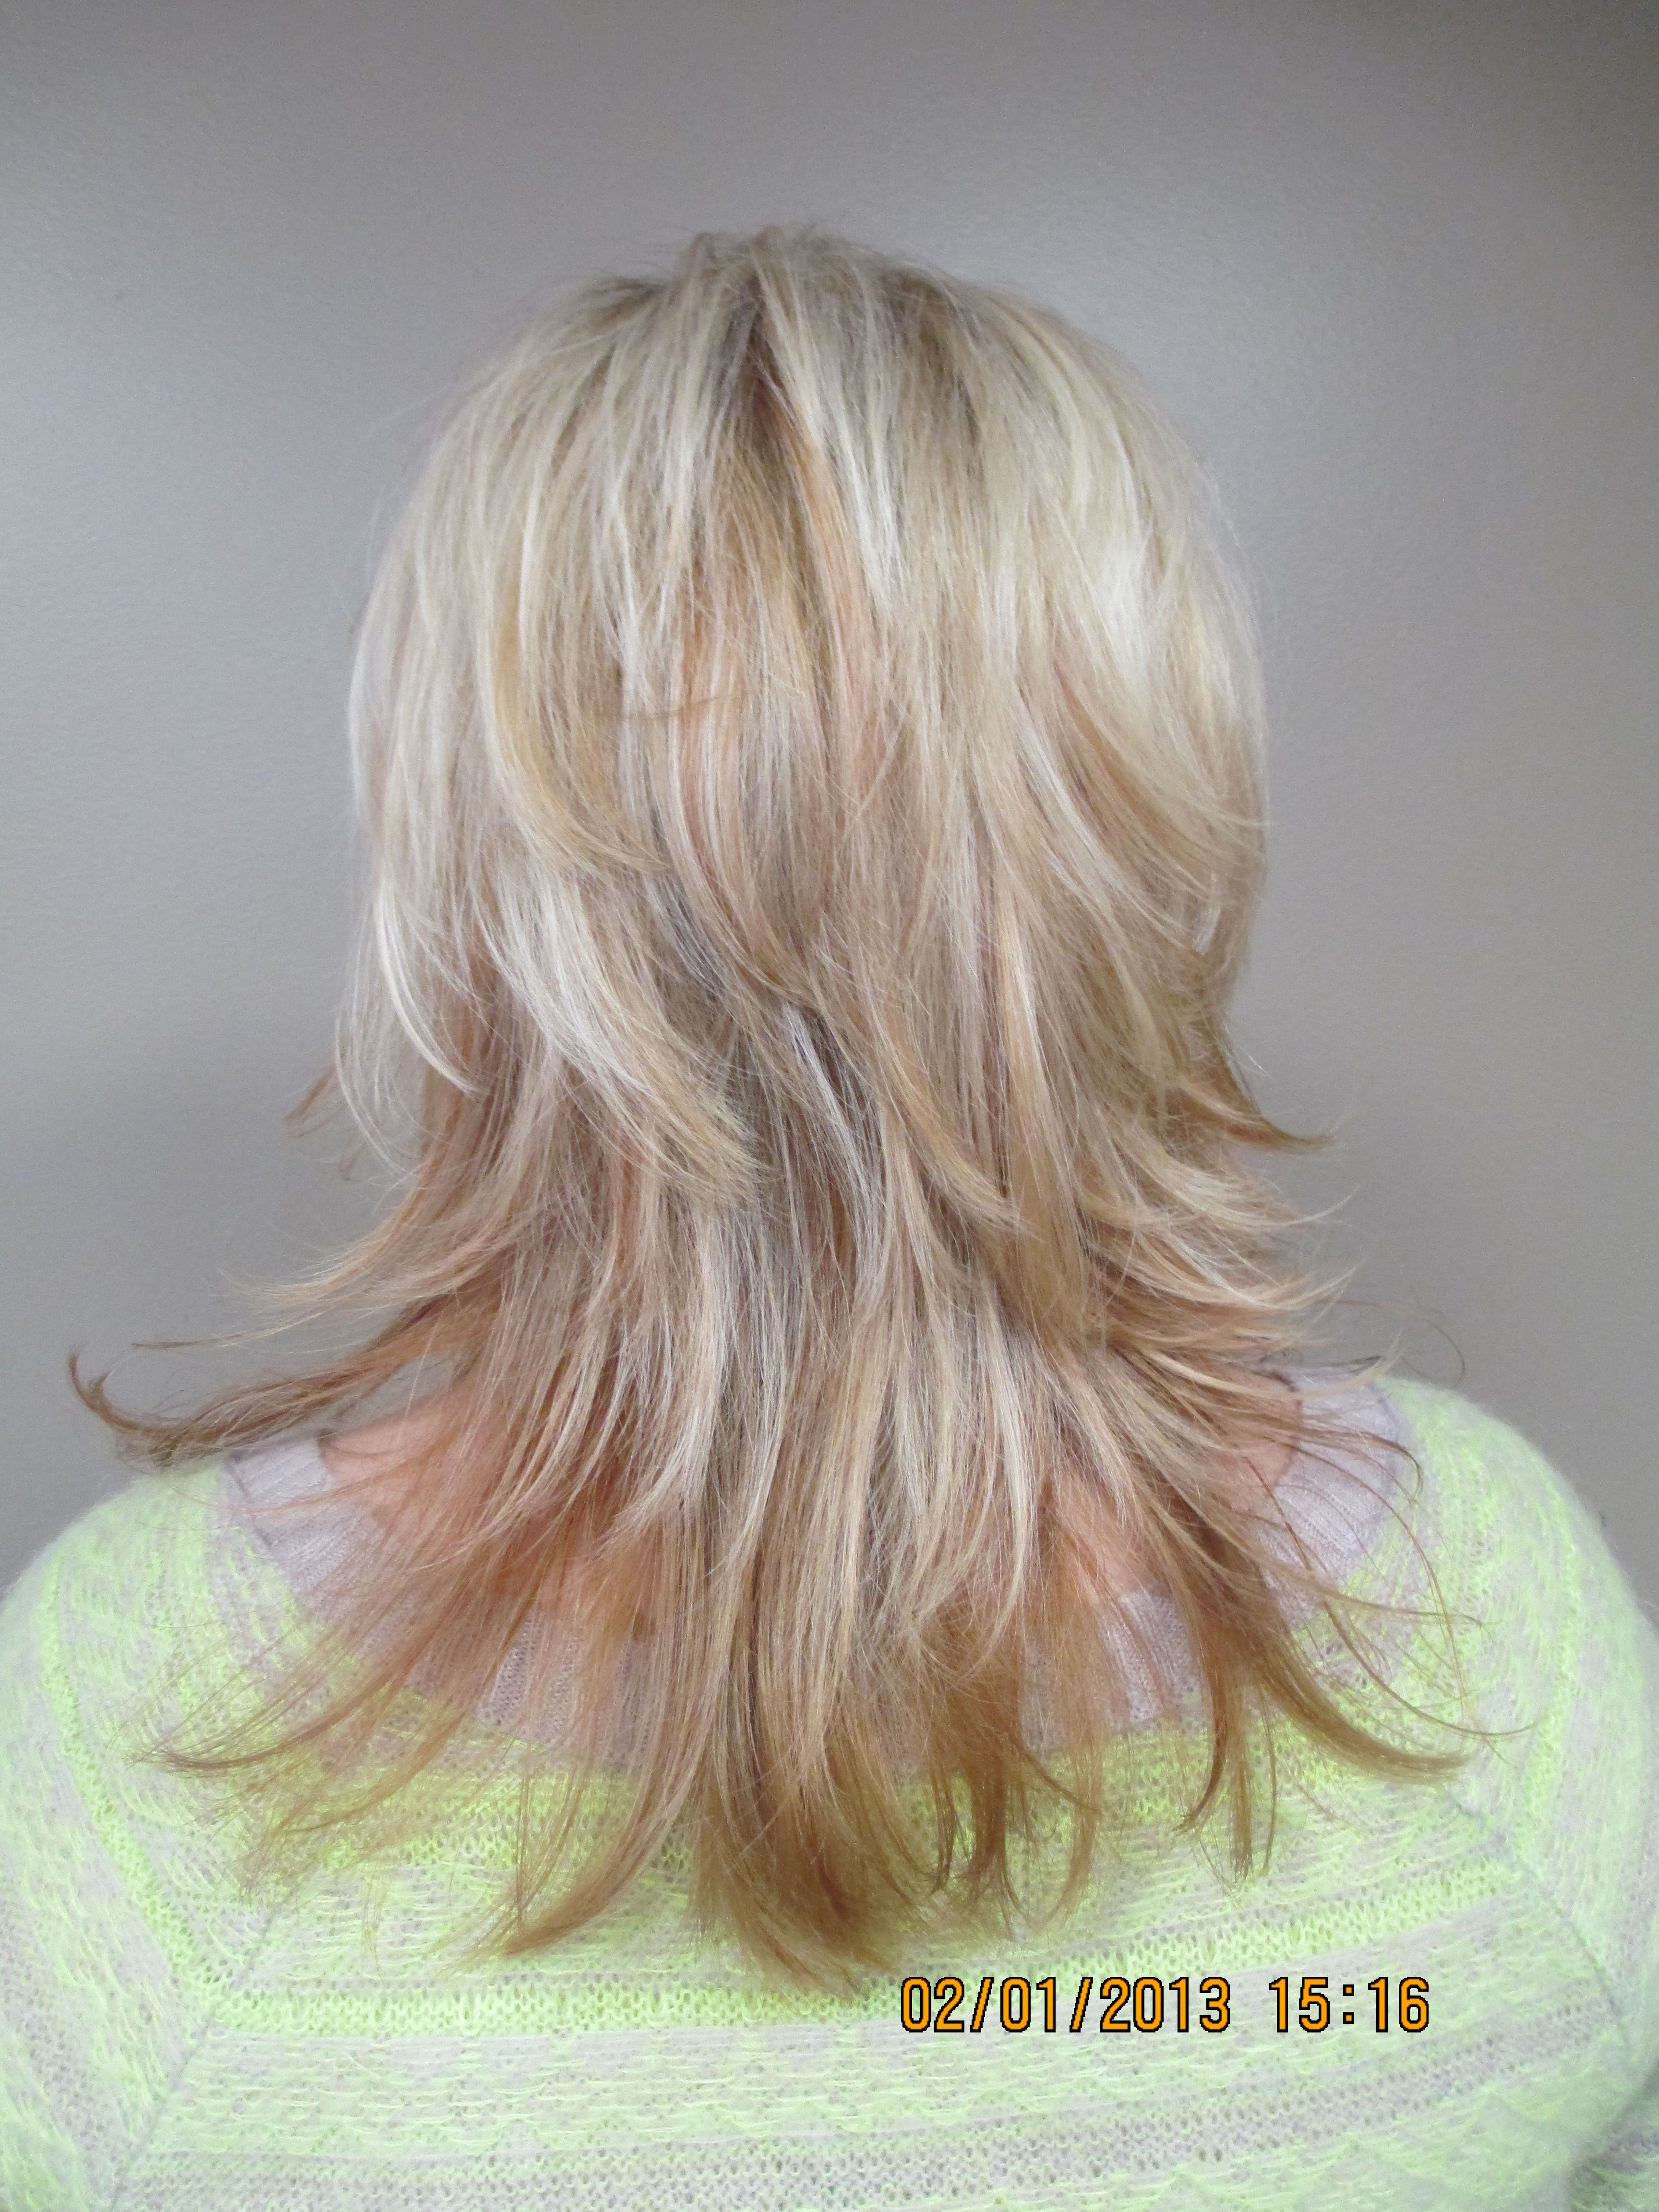 Rear View Updated Gypsy Shag With Triple Blond Highlights Done By